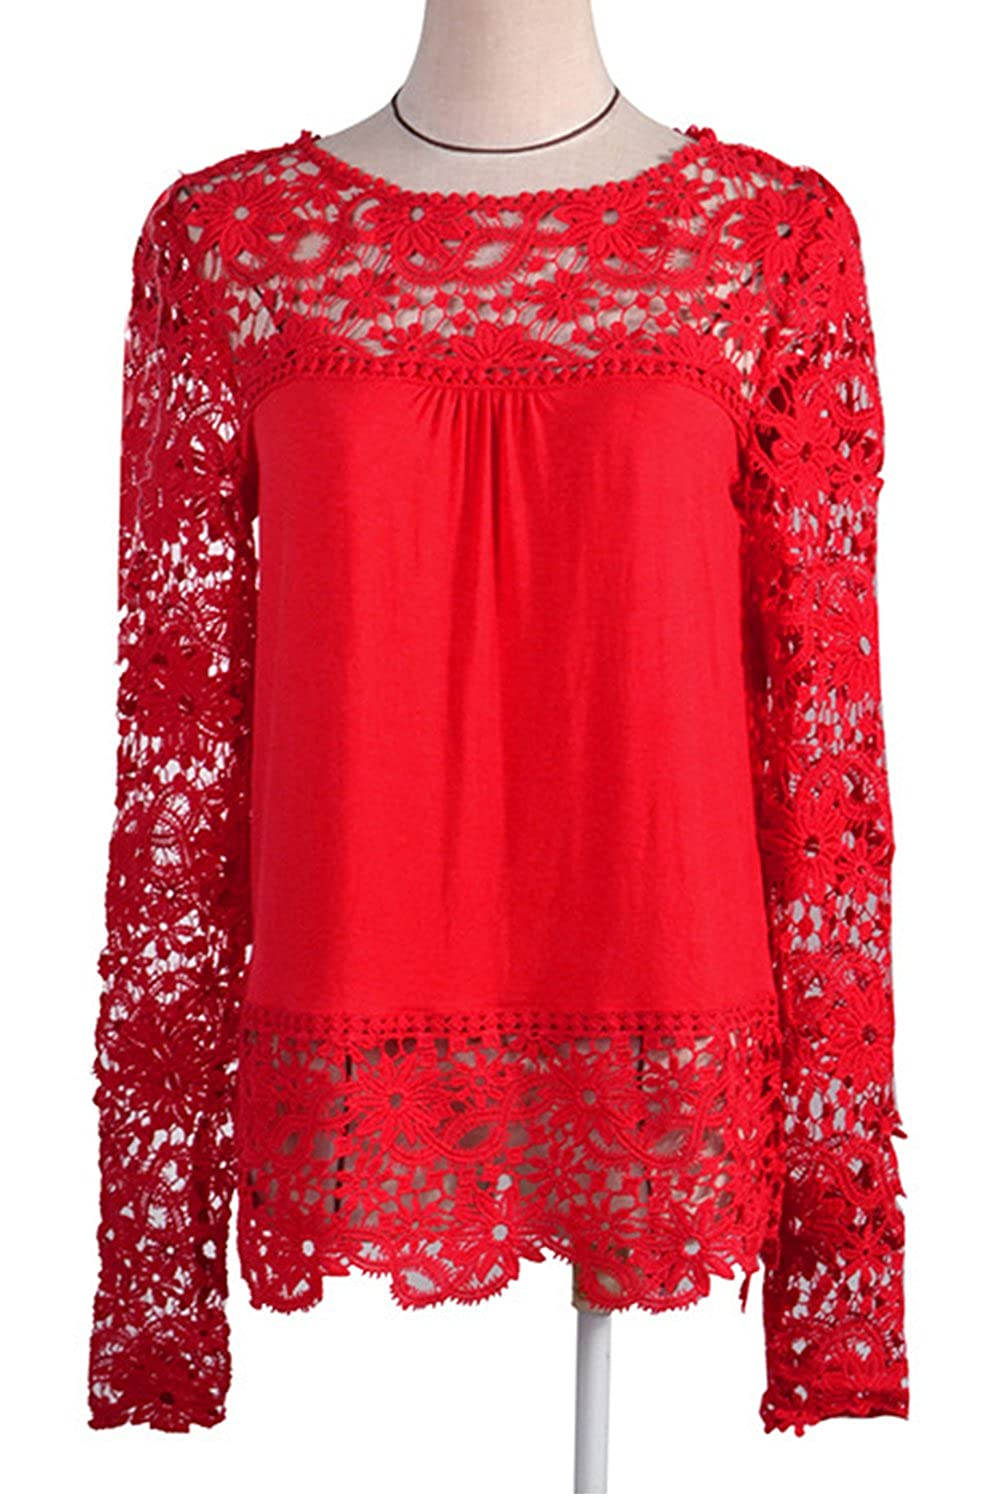 dd68612131 Zumeet Women Top Lace Decorated Loose Waist Shirt and Blouse Red at Amazon  Women s Clothing store